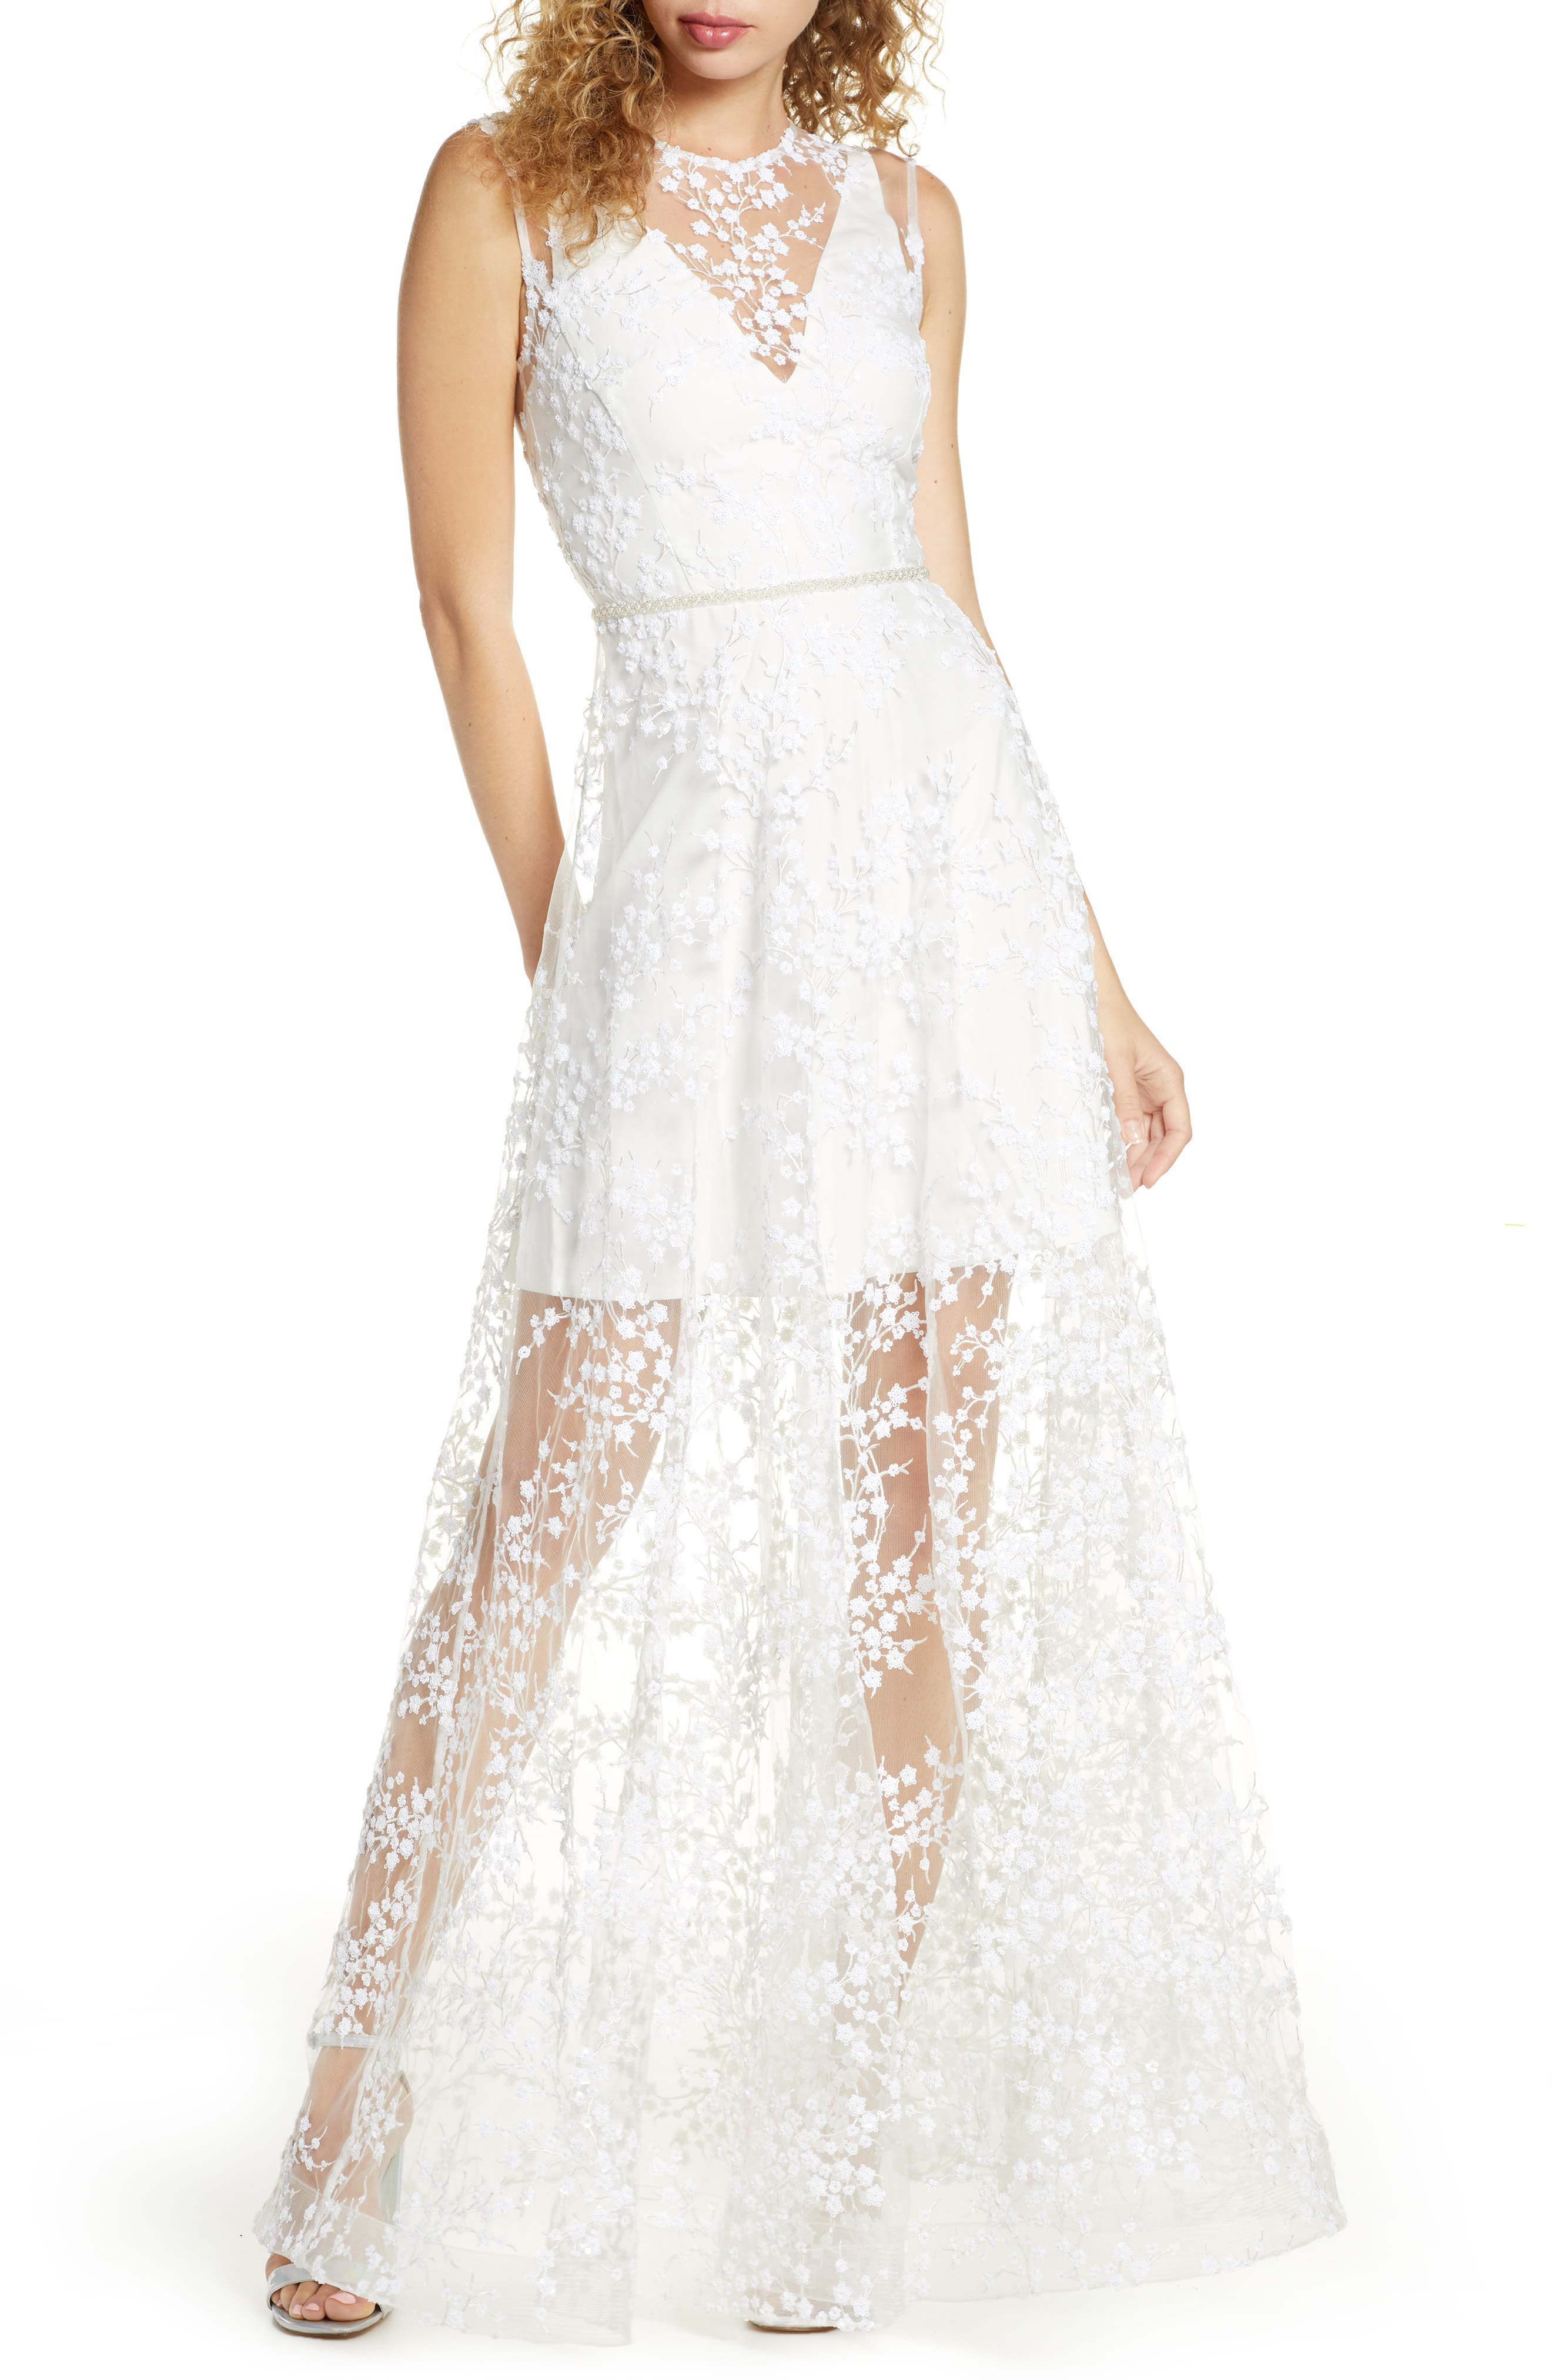 Bronx And Banco Olympia Blanc Sequin Floral Overlay Gown, White